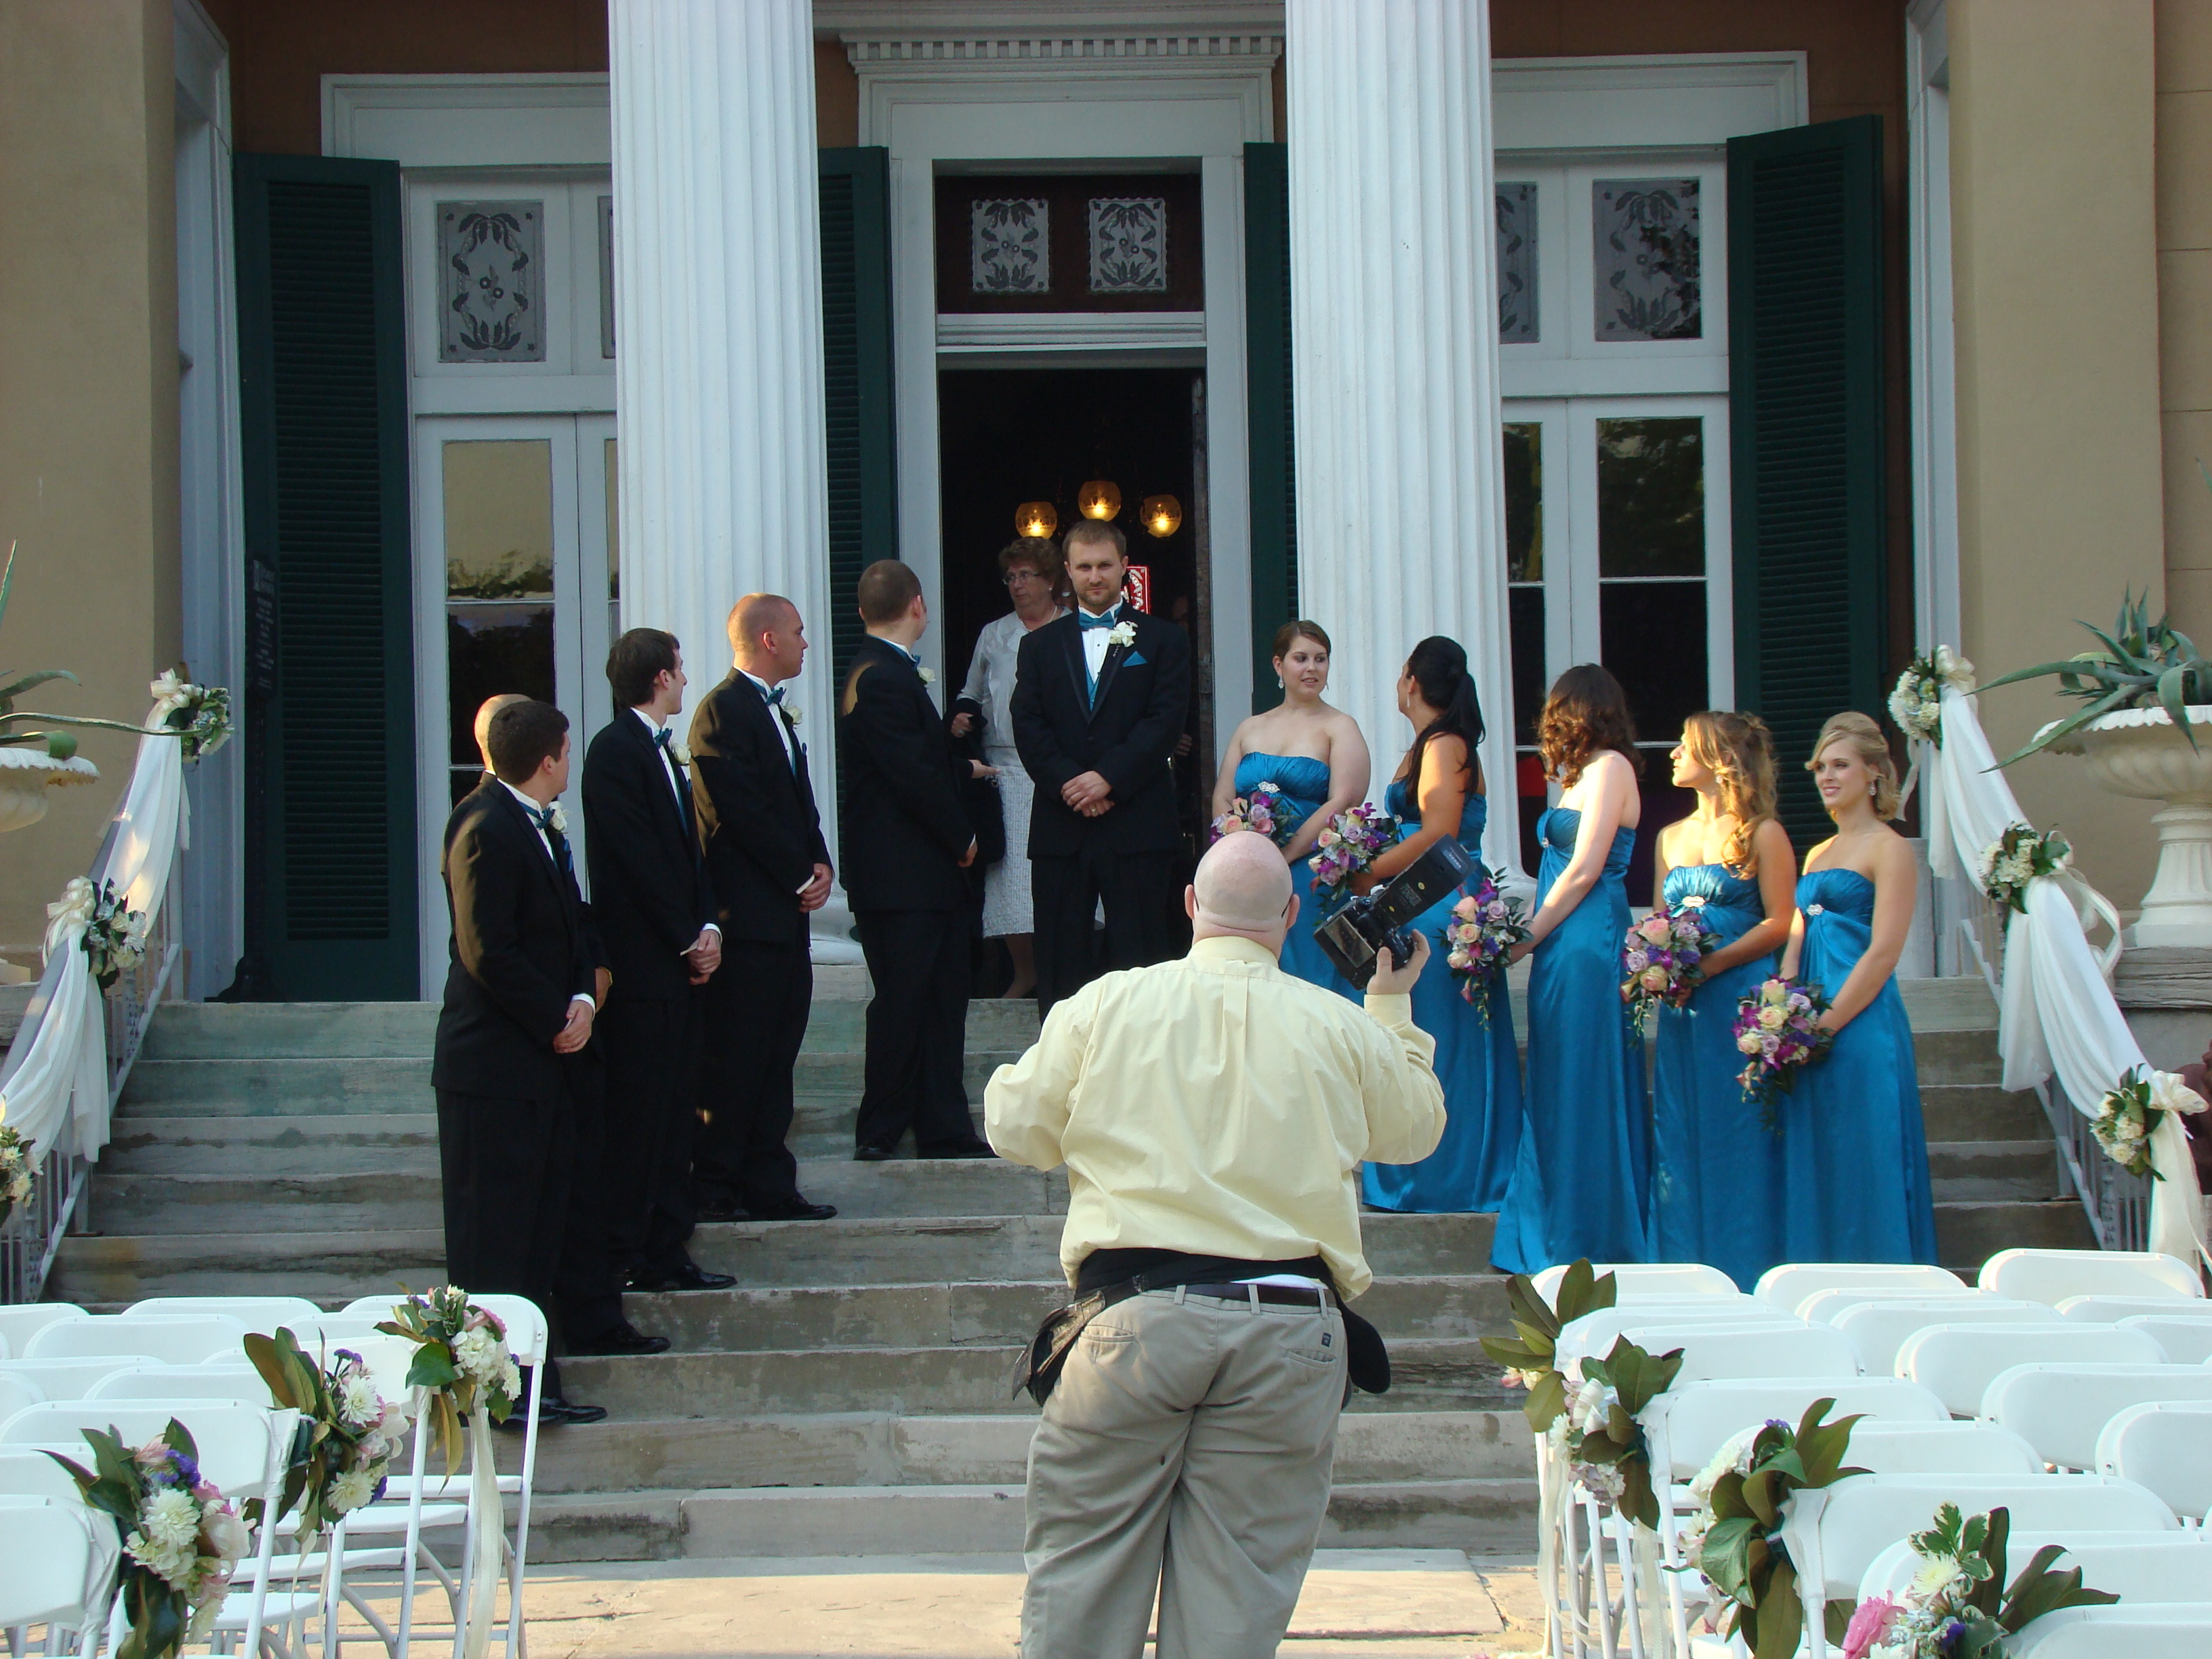 Belmont Mansion Harwell wedding 6-11-20110172